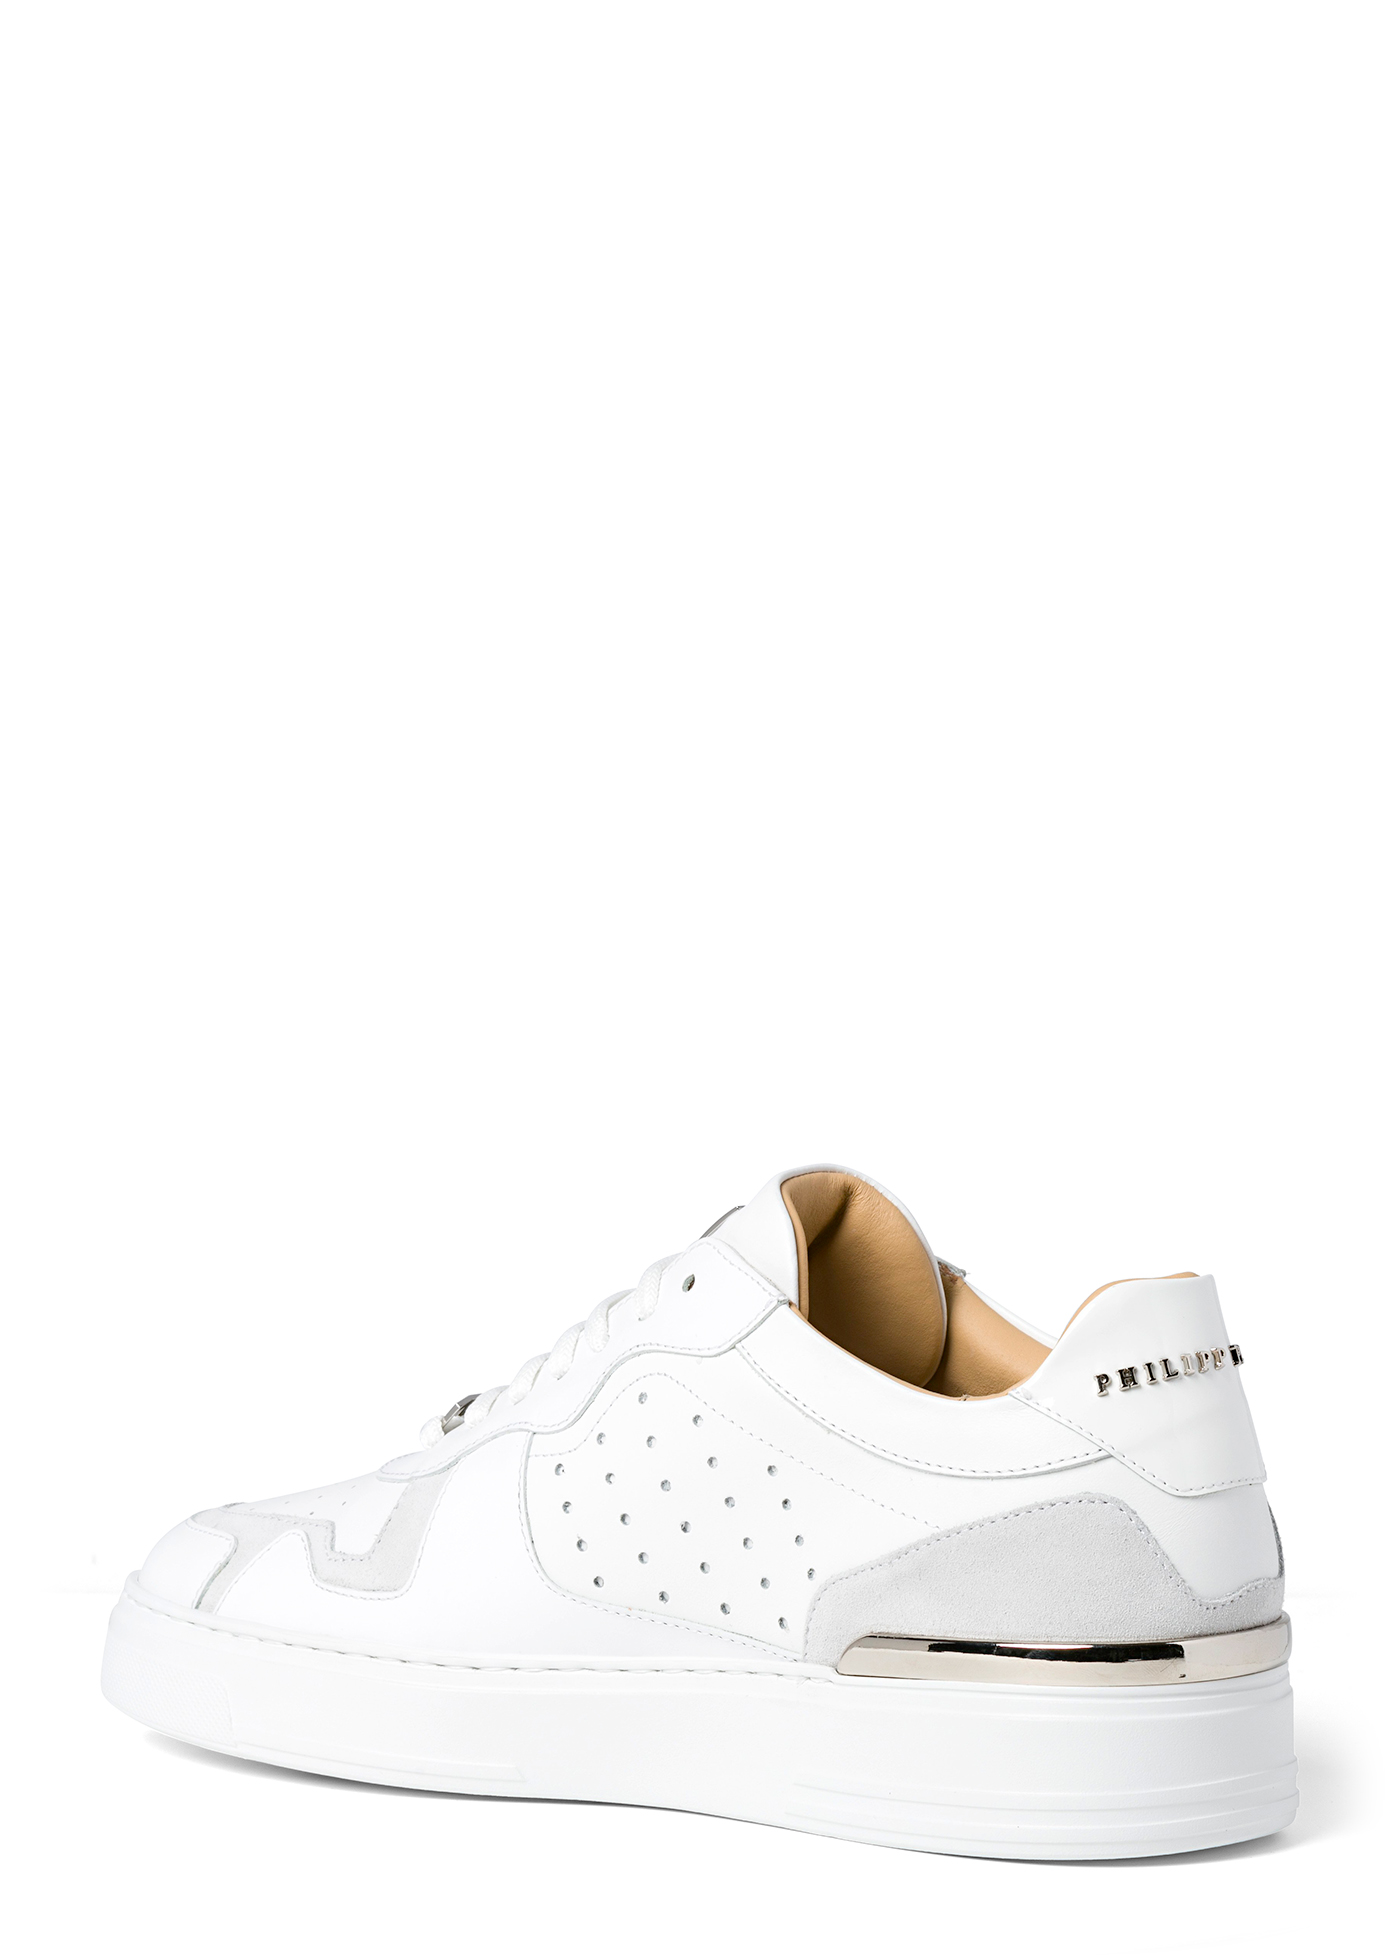 Lo-Top Sneakers mix leathers G.O.A.T. TM image number 2